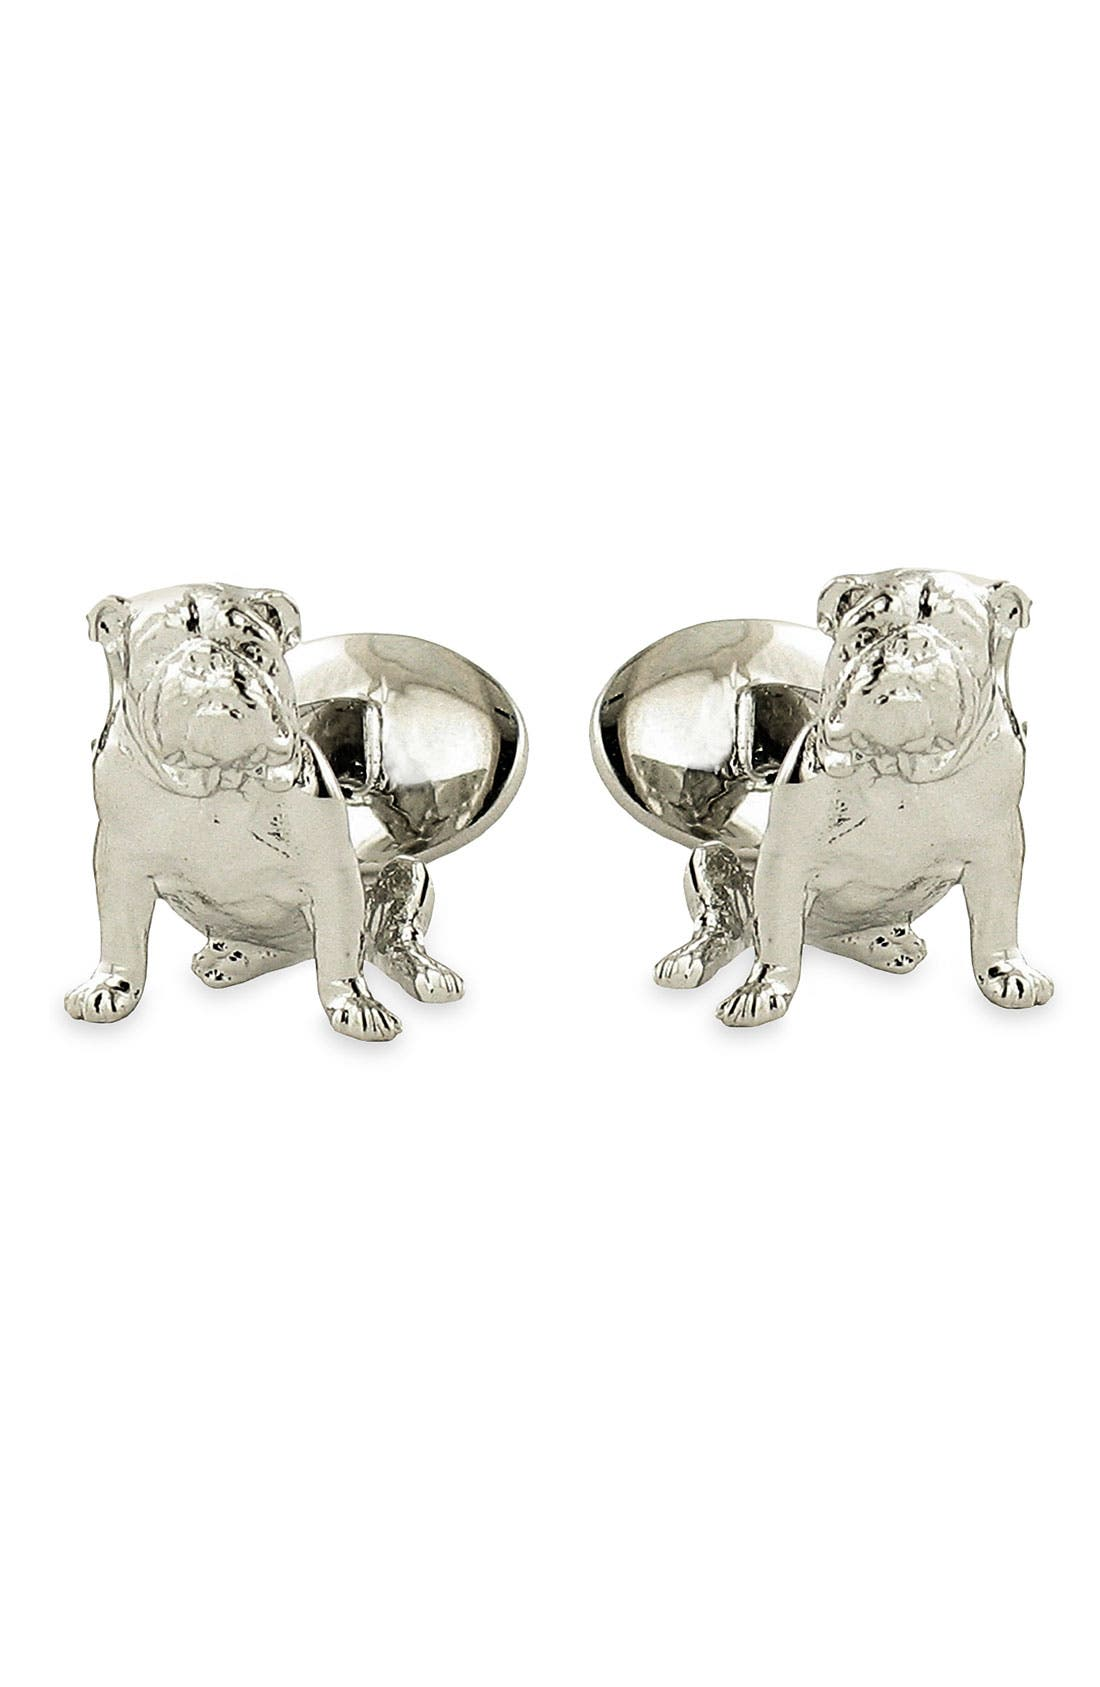 Alternate Image 1 Selected - David Donahue 'Bulldog' Sterling Silver Cuff Links